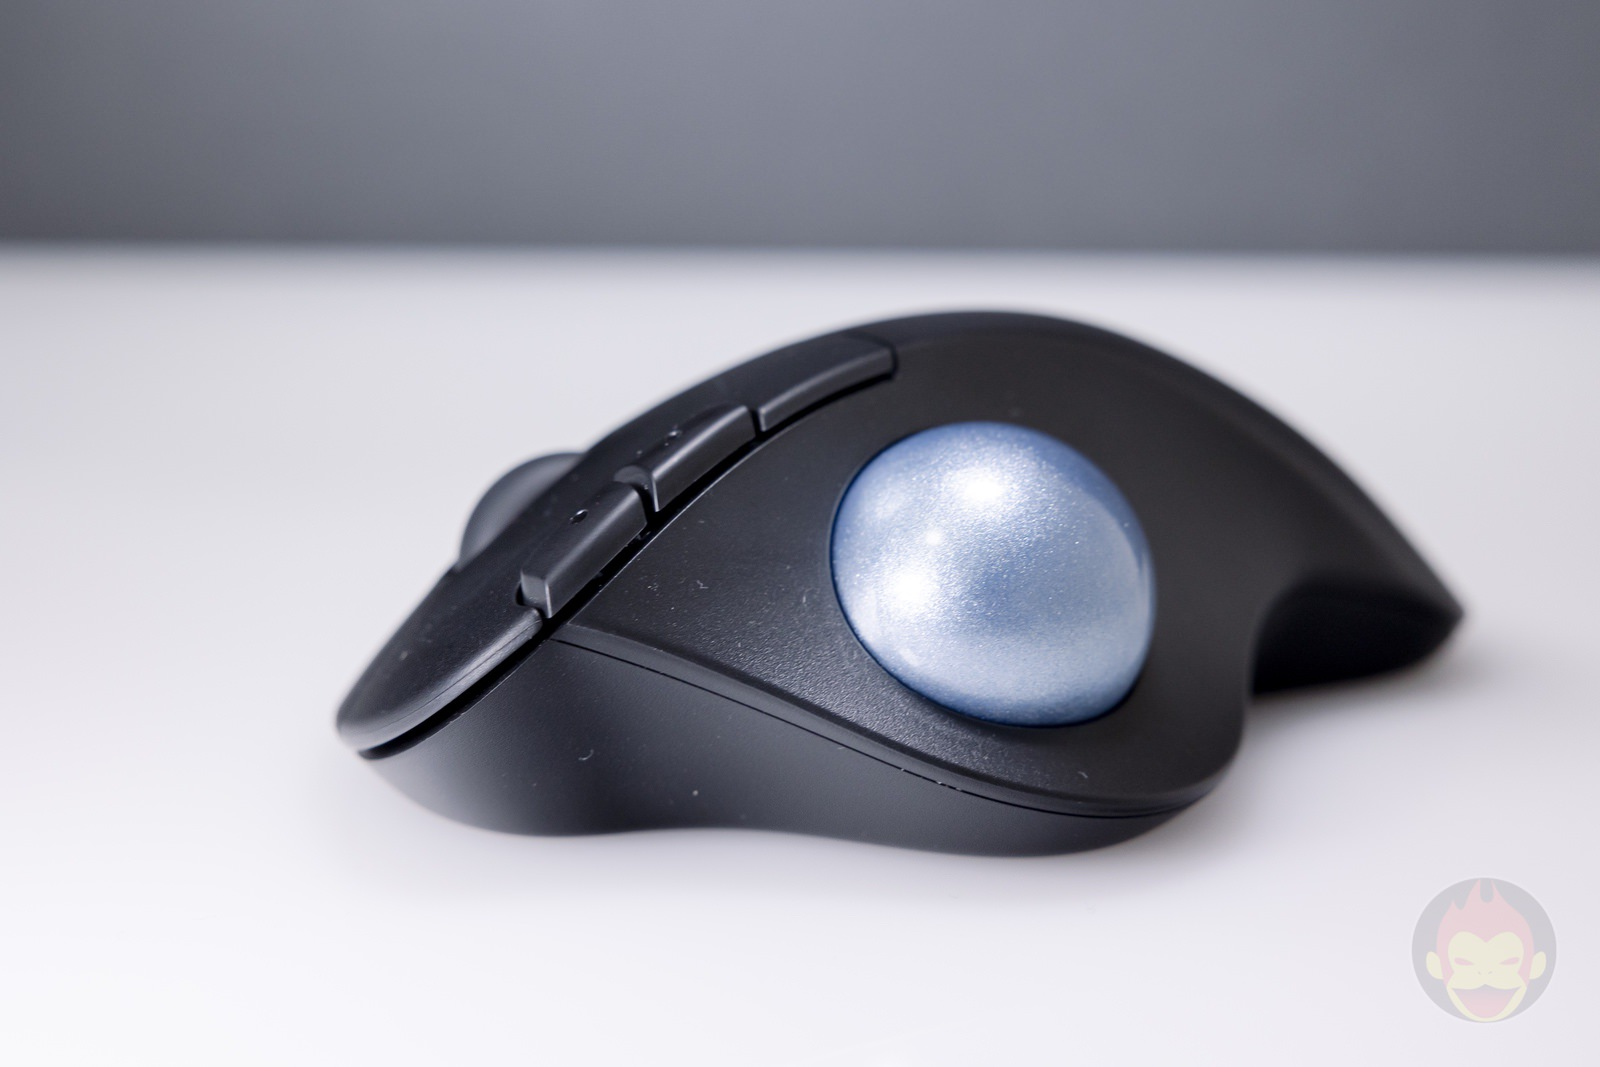 Logicool-ERGO-M575S-Trackball-Hands-on-08.jpg